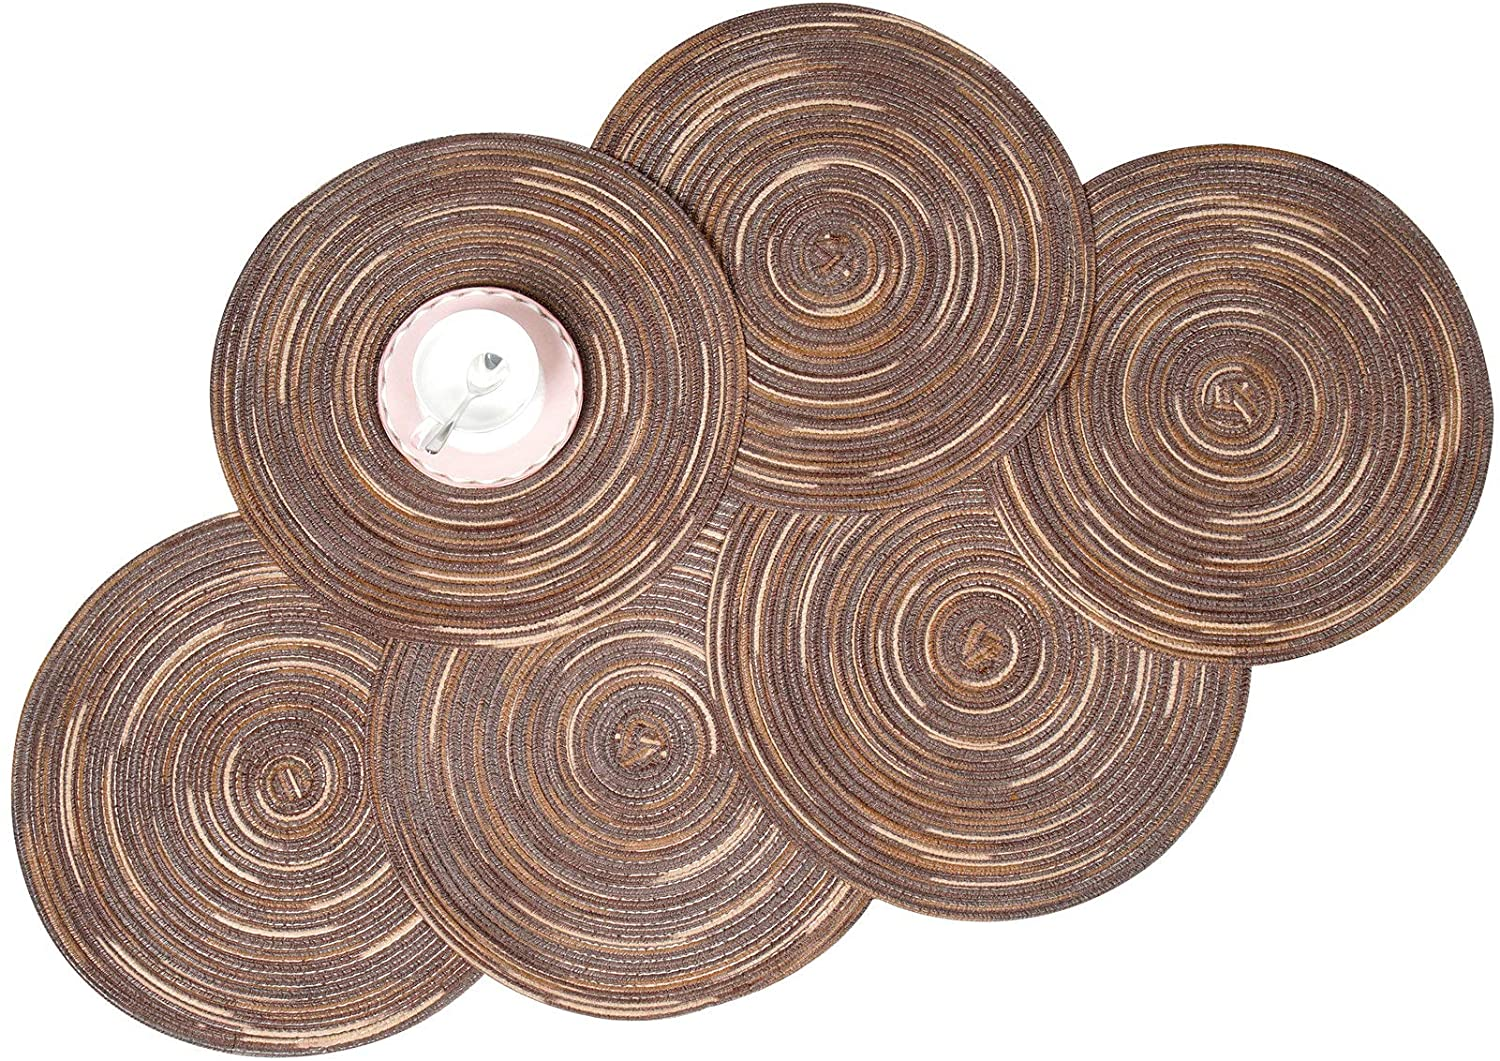 Zupro Round Placemats Set of 6, Braided Cotton Table Mats Heat Resistant Non-Slip Washable,for Fall,Dinner Parties,BBQs,Christmas Parties and Everyday Use(Rainbow-Brown)